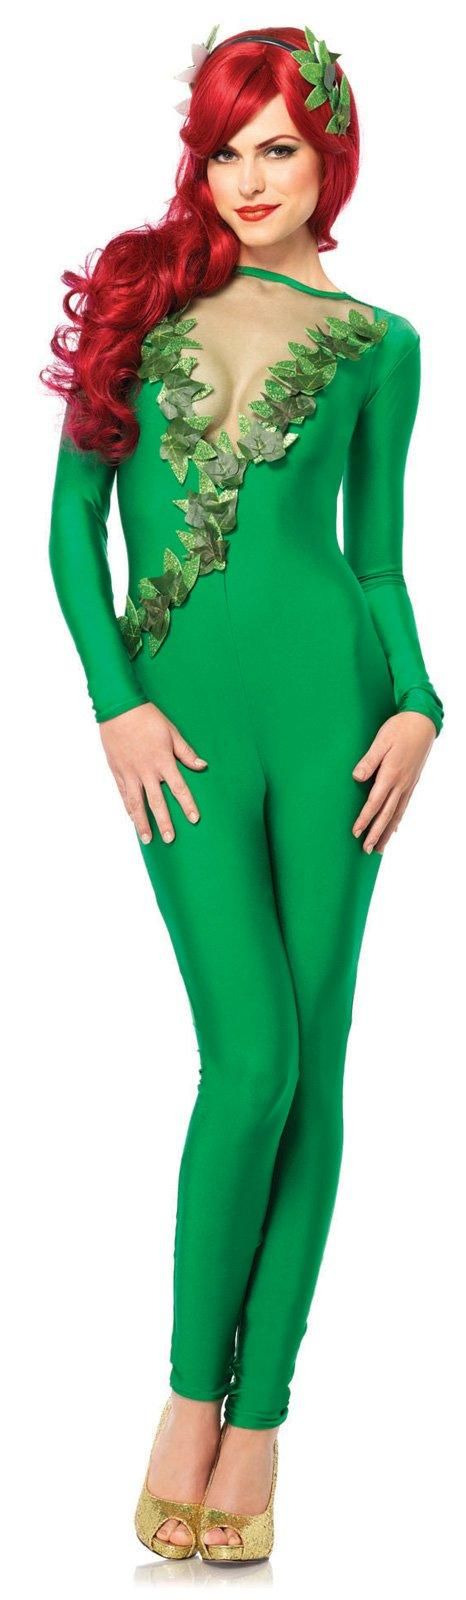 Poison Ivy Vixen Costume from Buycostumes.com $69.99